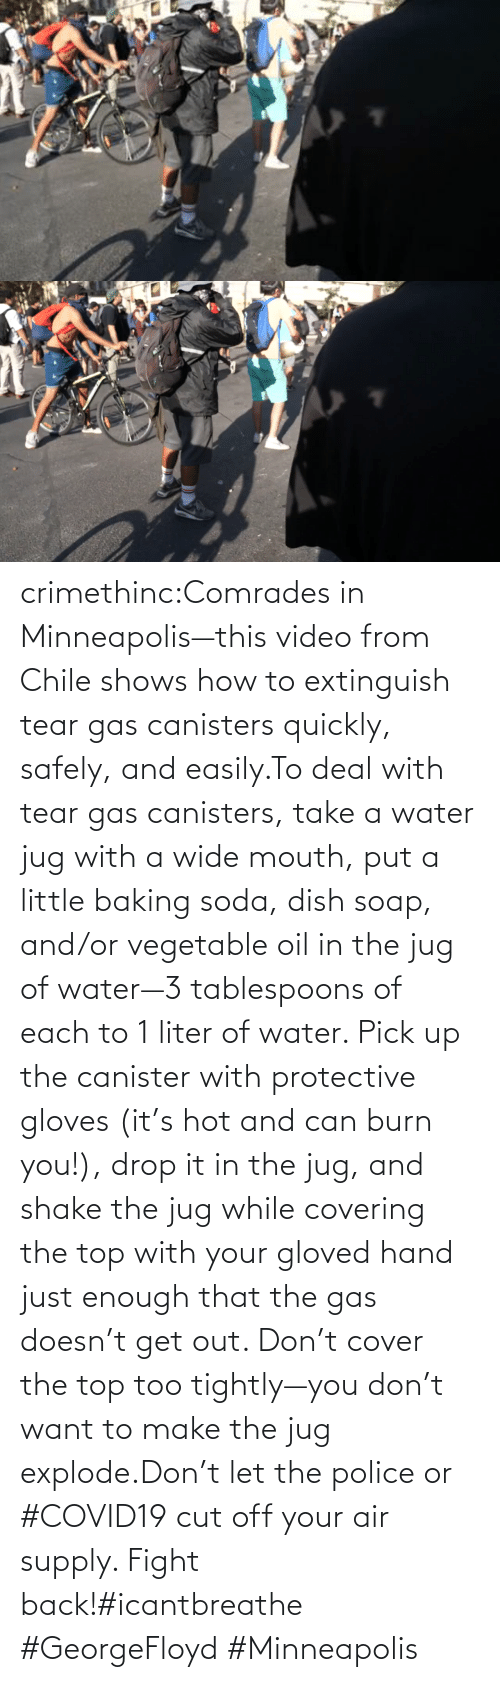 enough: crimethinc:Comrades in Minneapolis—this video from Chile shows how to extinguish tear gas canisters quickly, safely, and easily.To deal with tear gas canisters, take a water jug with a wide mouth, put a little baking soda, dish soap, and/or vegetable oil in the jug of water—3 tablespoons of each to 1 liter of water. Pick up the canister with protective gloves (it's hot and can burn you!), drop it in the jug, and shake the jug while covering the top with your gloved hand just enough that the gas doesn't get out. Don't cover the top too tightly—you don't want to make the jug explode.Don't let the police or #COVID19 cut off your air supply. Fight back!#icantbreathe #GeorgeFloyd #Minneapolis